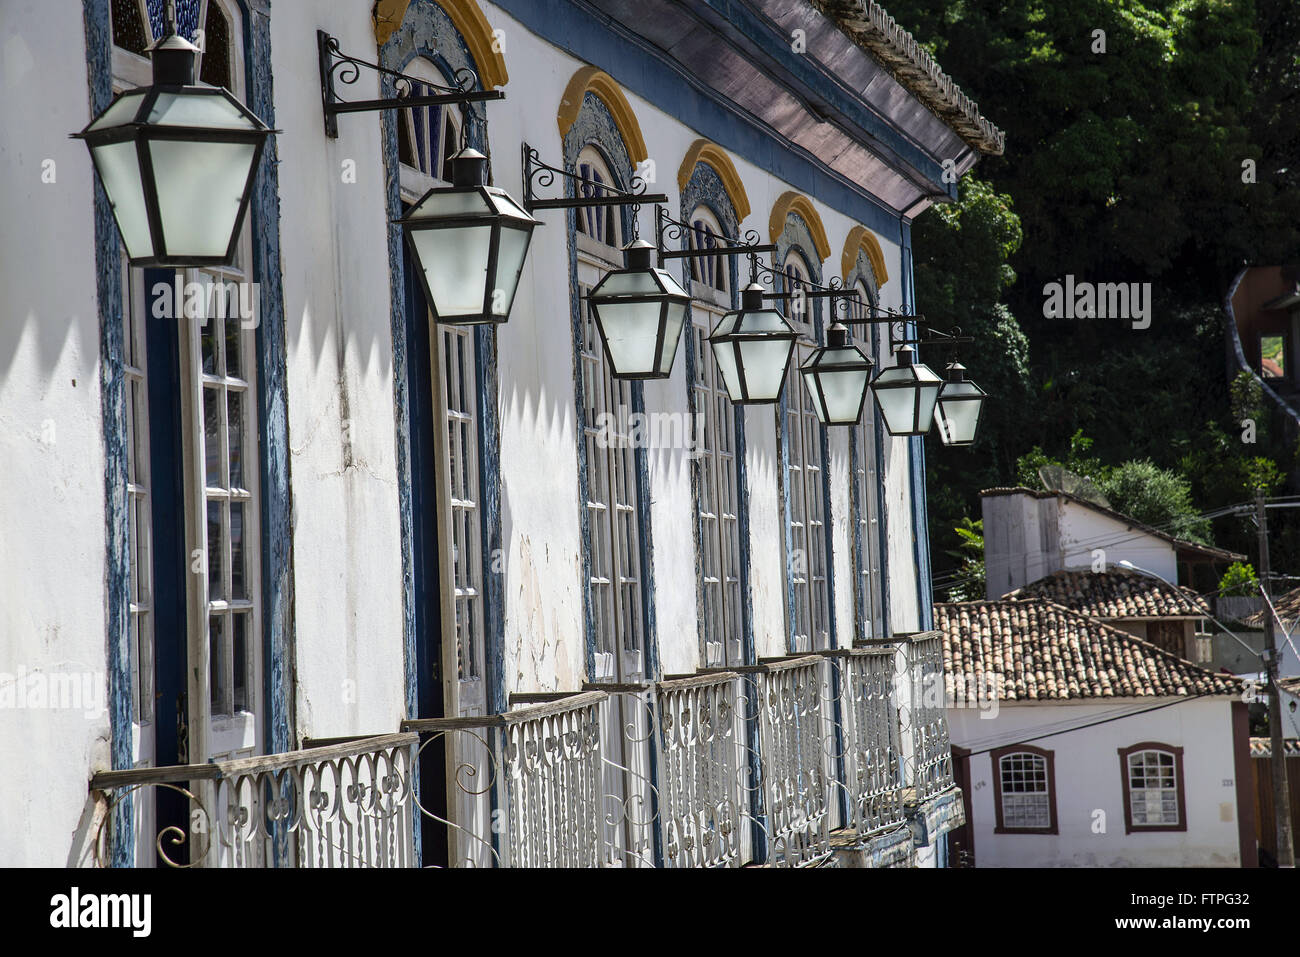 Architectural detail of a town hall - Stock Image